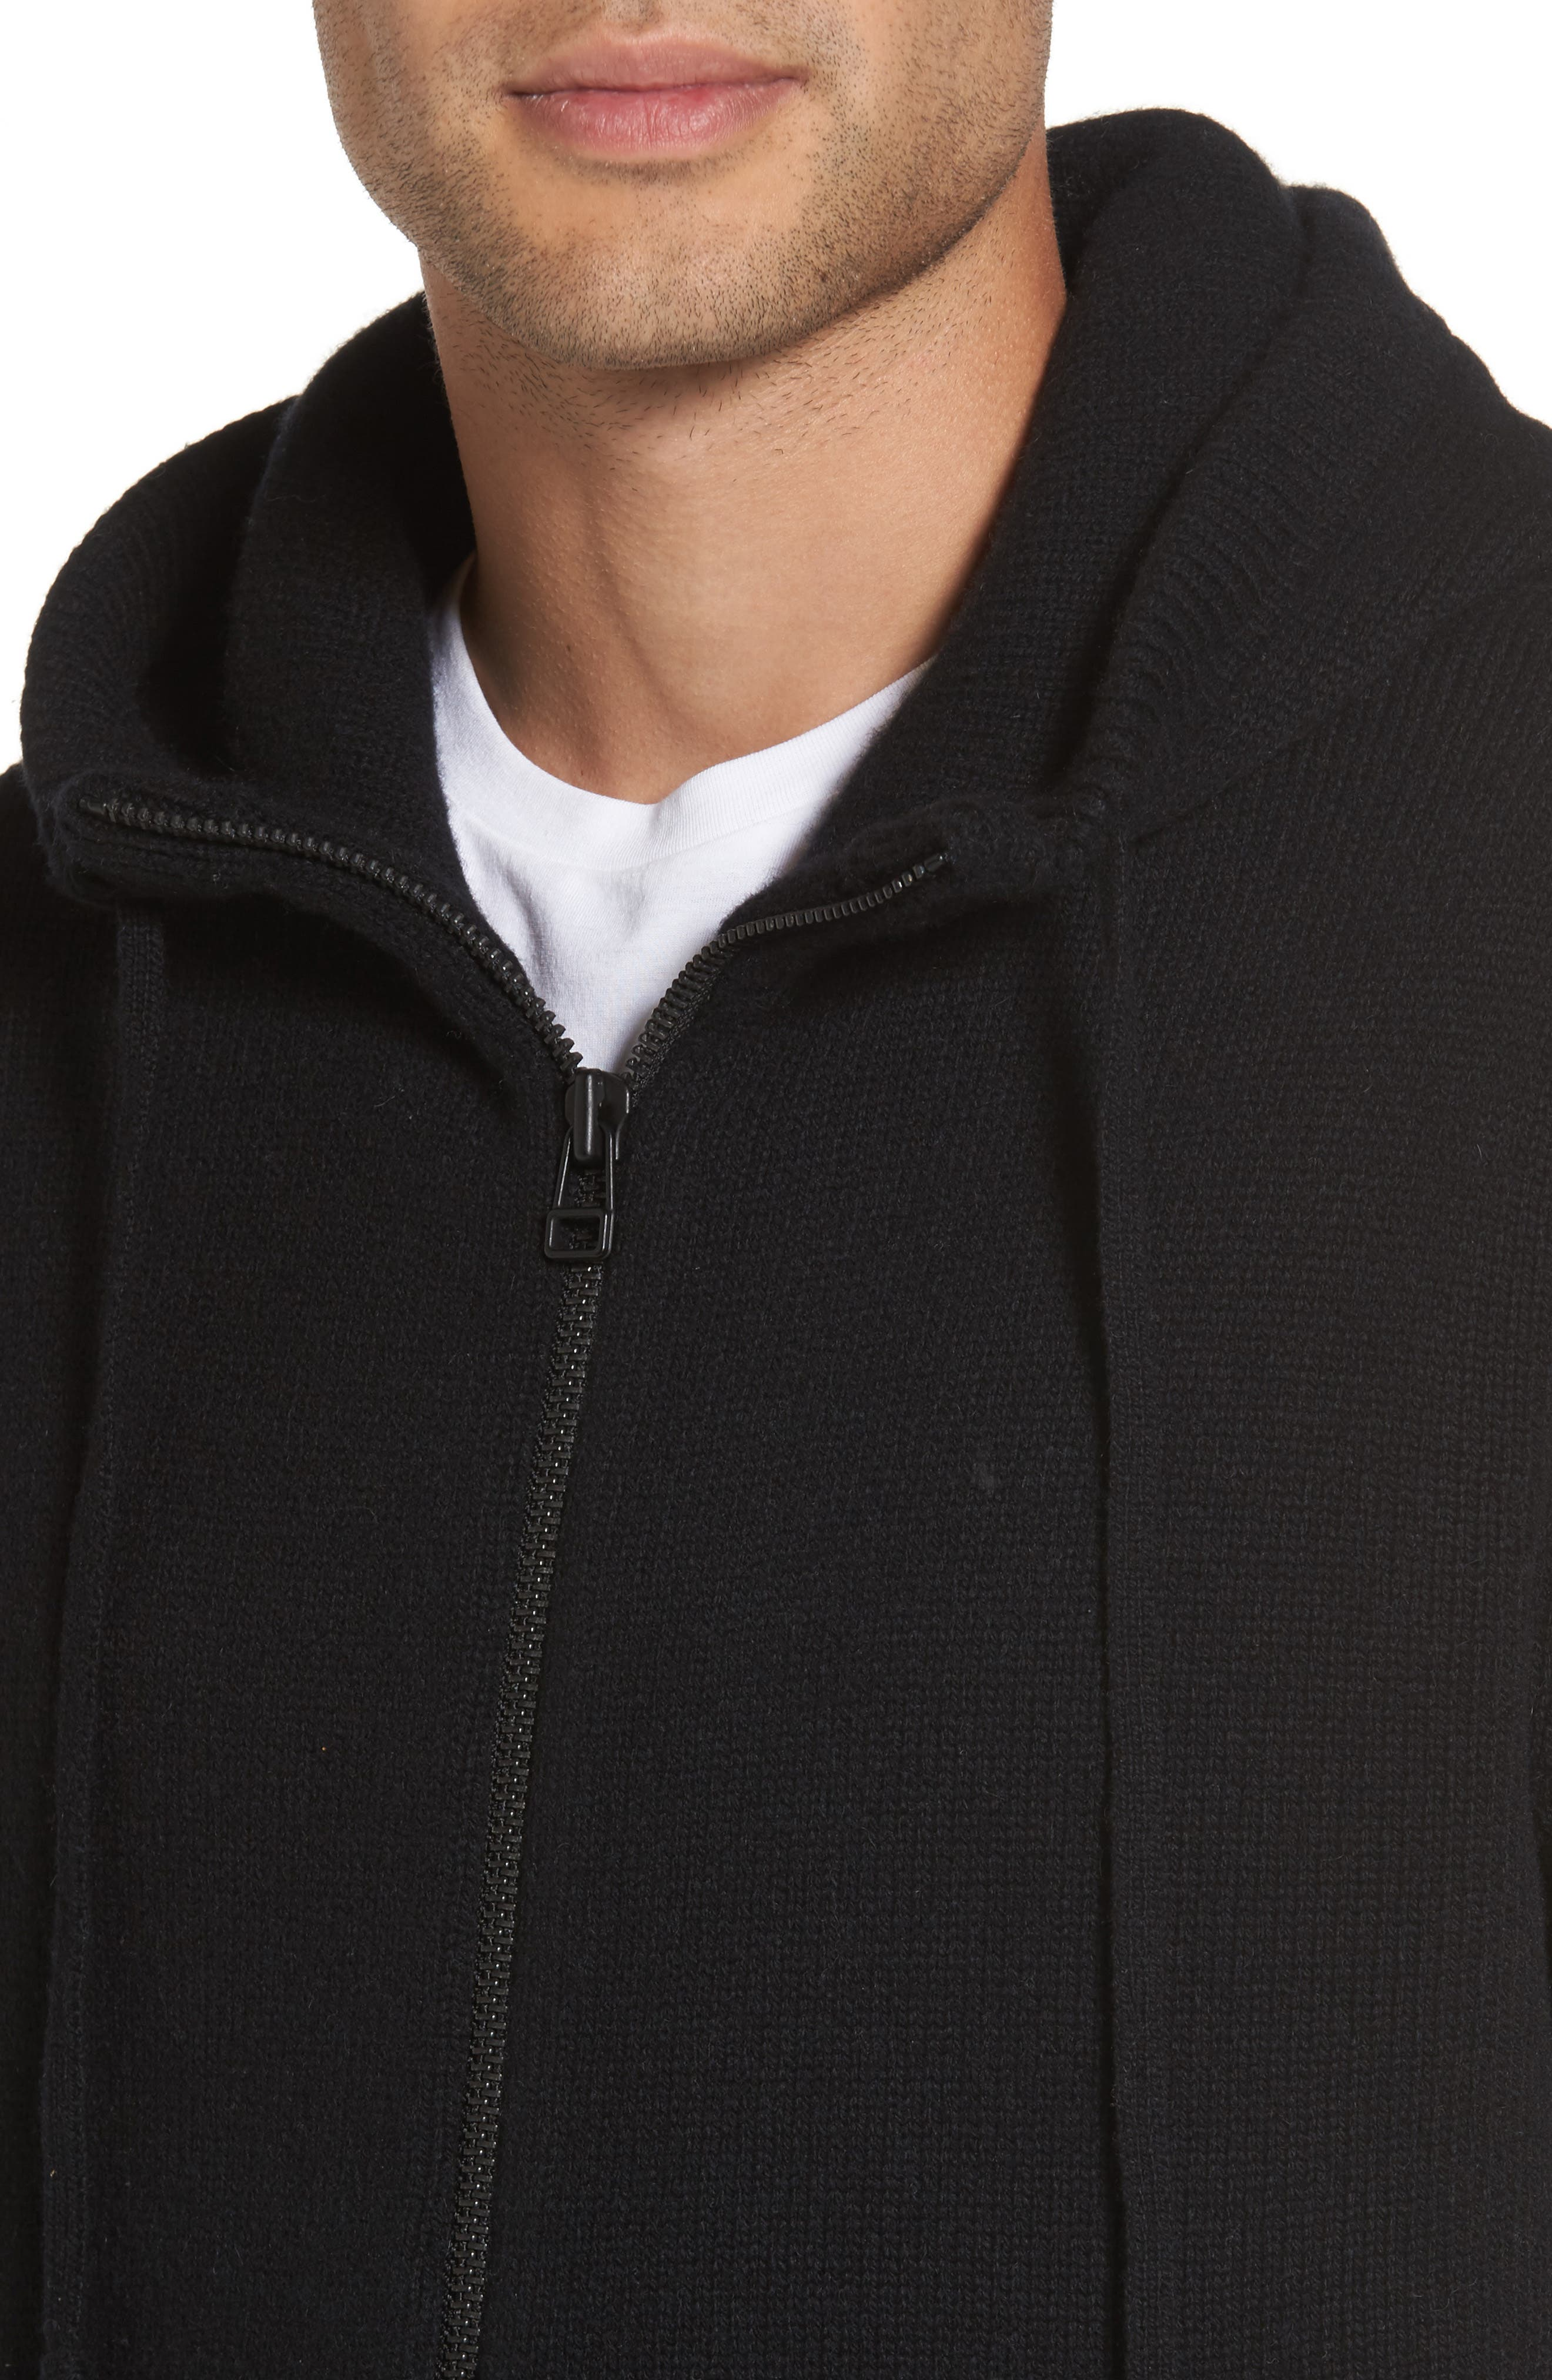 Front Zip Wool & Cashmere Hoodie,                             Alternate thumbnail 4, color,                             001